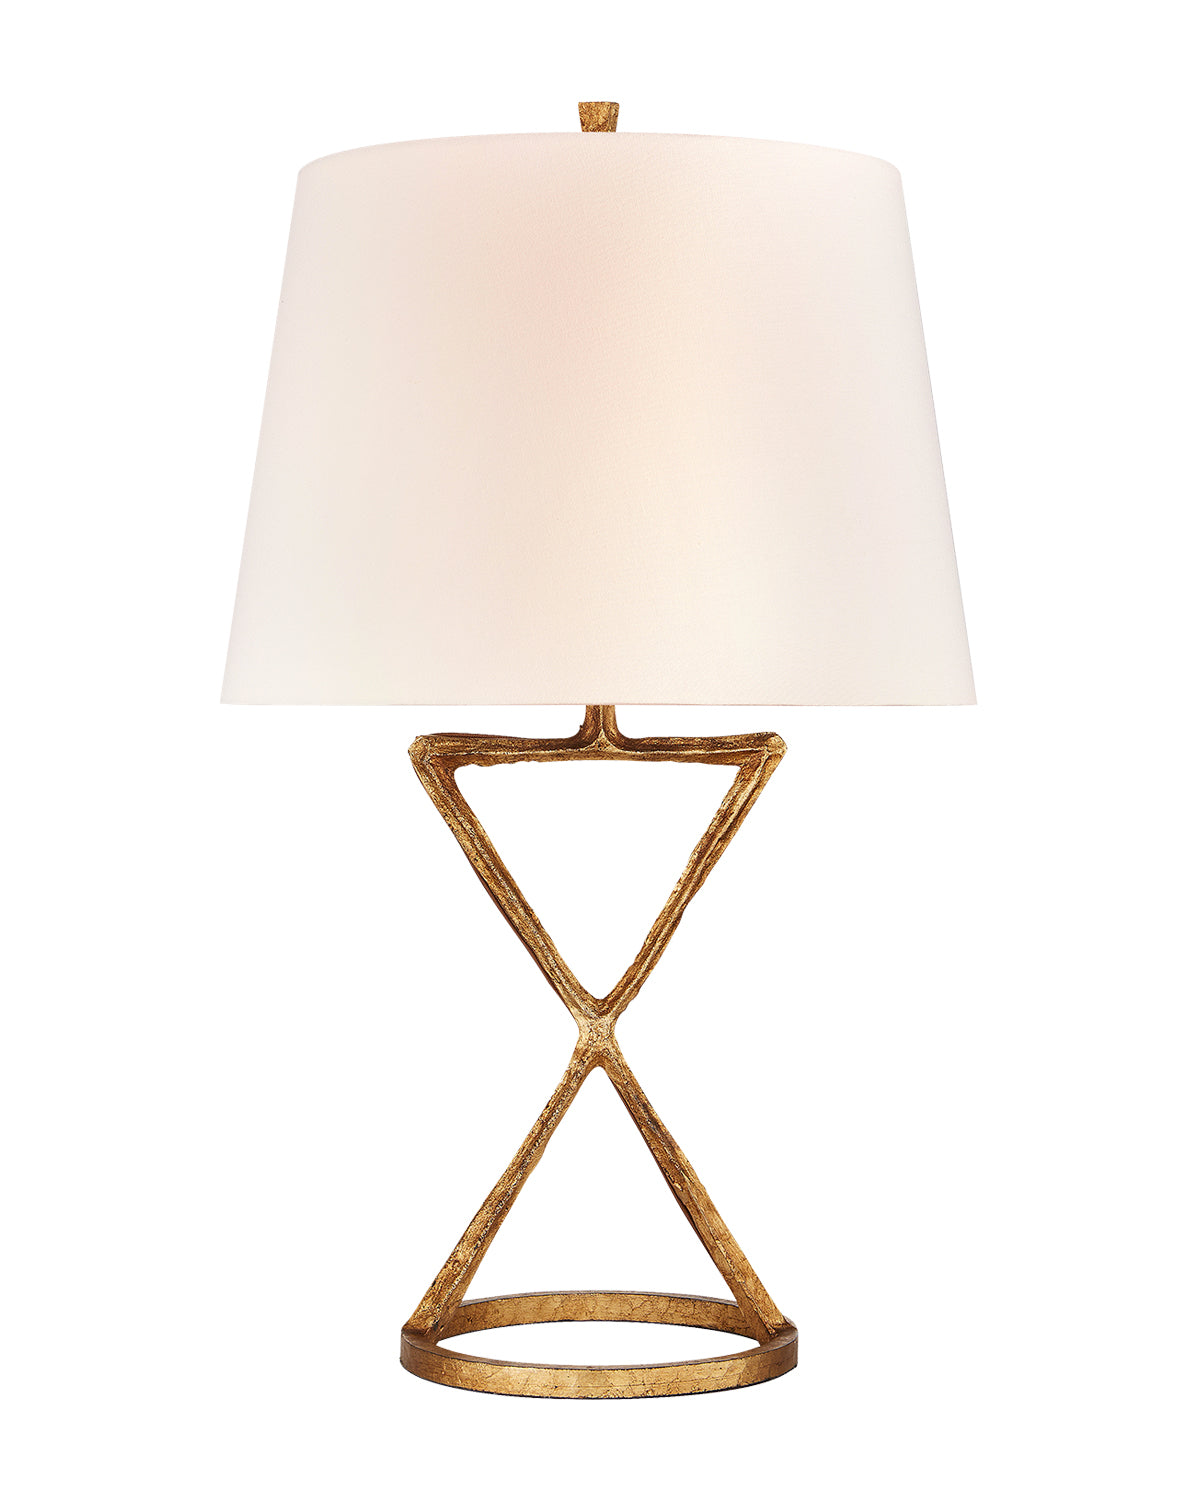 Anneu table lamp 1 jpgv1524689029